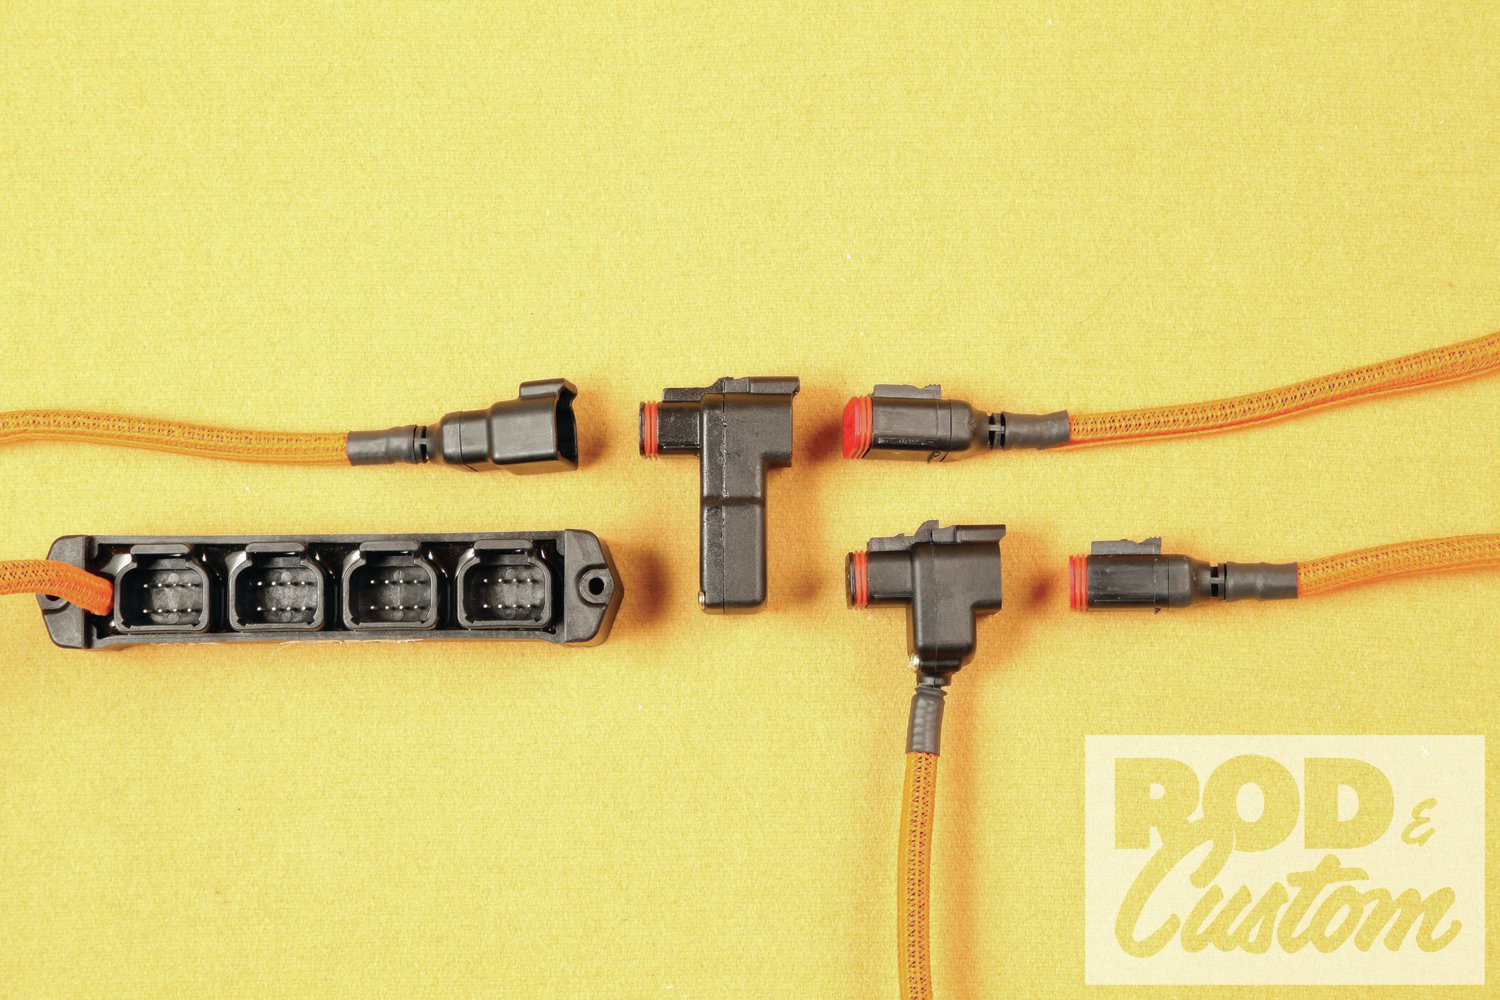 The connector ports match for a reason: with very few exceptions each one fits with the others. That makes any component fit within the system at any point with a connector. Controllers can go in line or at the end of their own dedicated line.